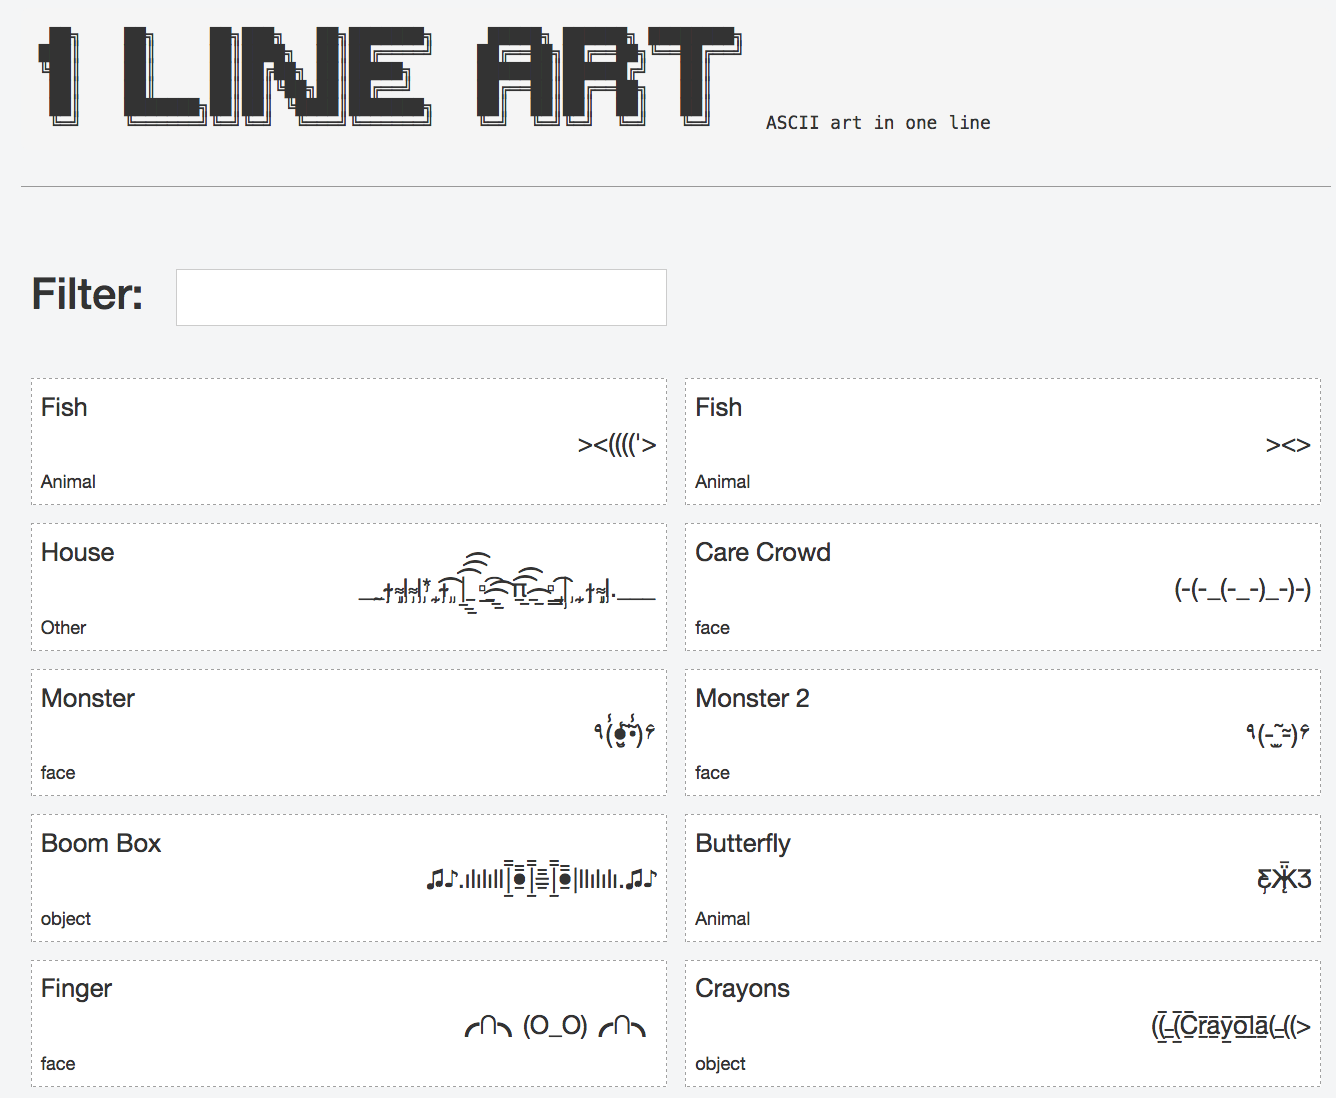 http://1lineart.kulaone.com - click to launch in a new window